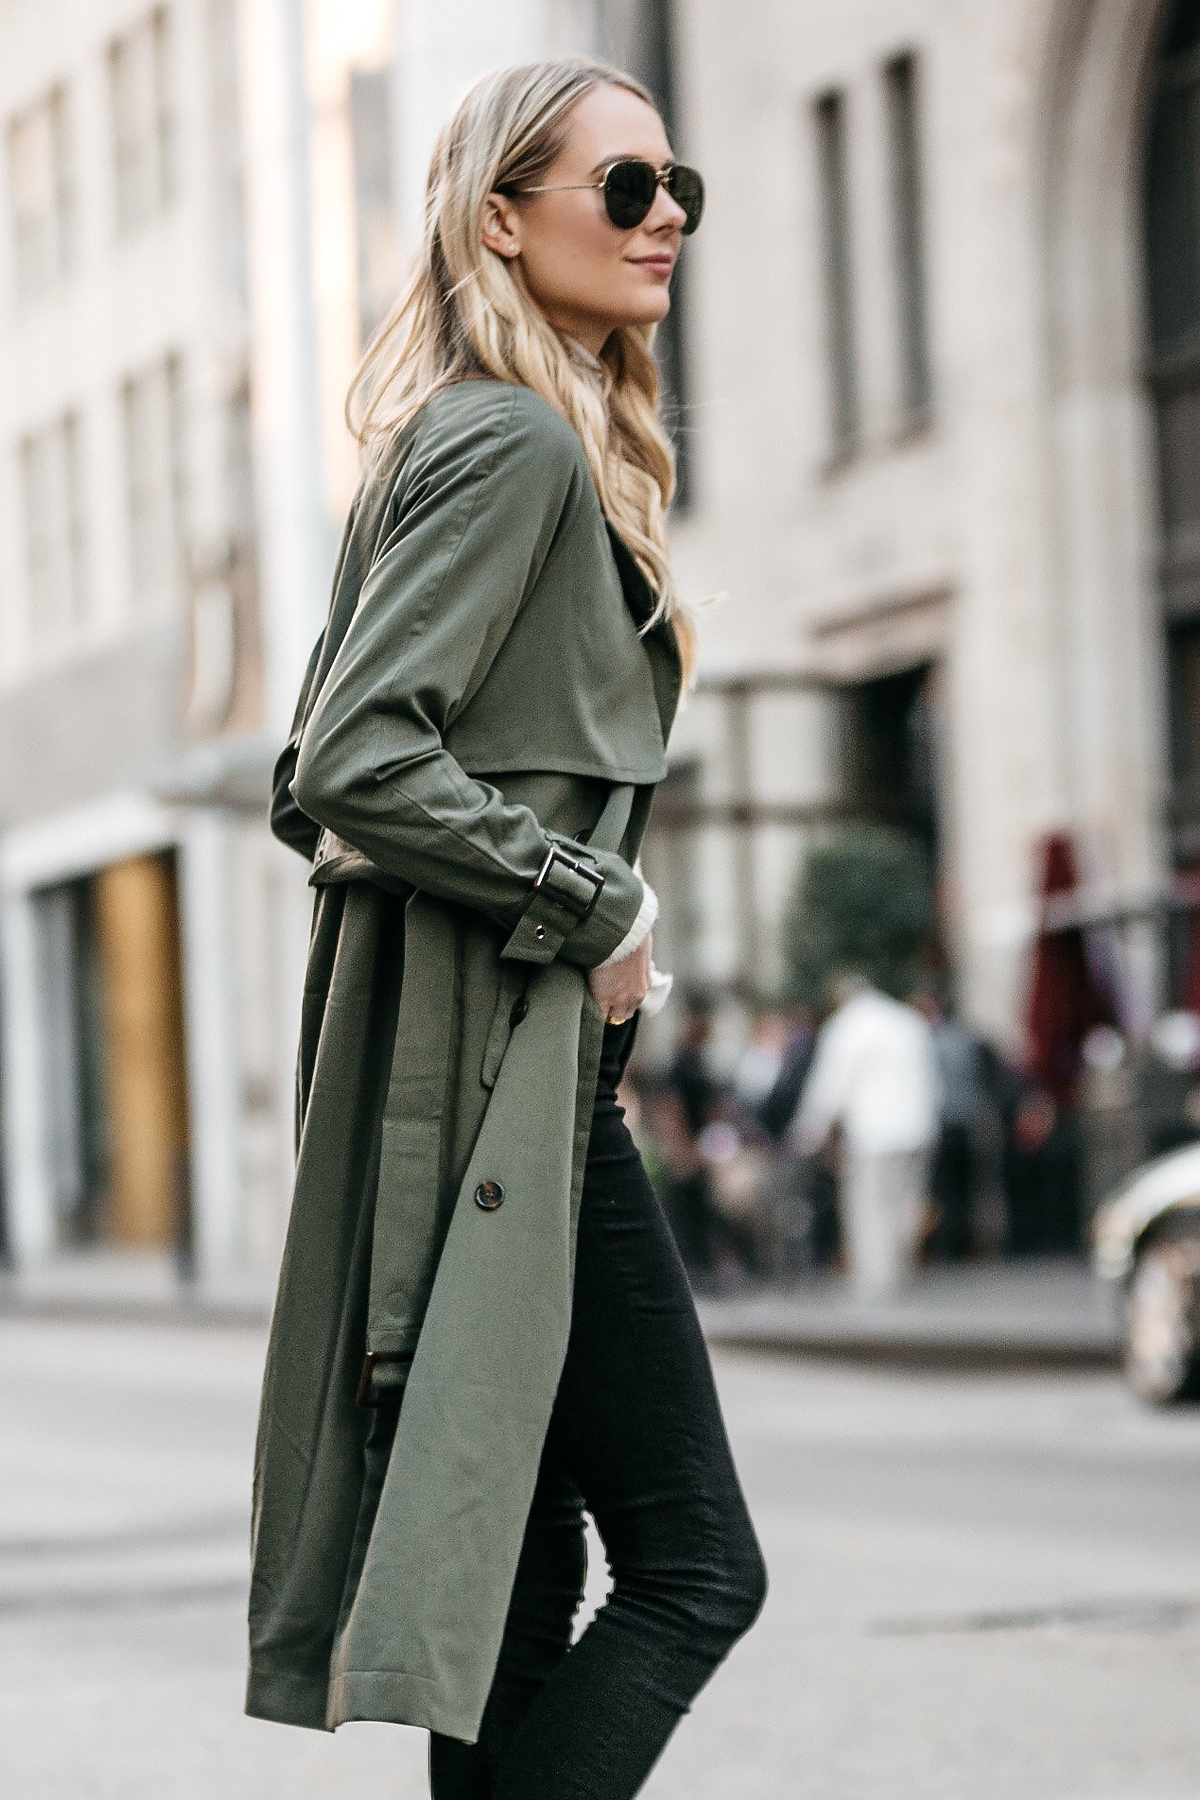 Blonde Woman Wearing Green Trench Coat Black Jeans Fashion Jackson Dallas Blogger Fashion Blogger Street Style